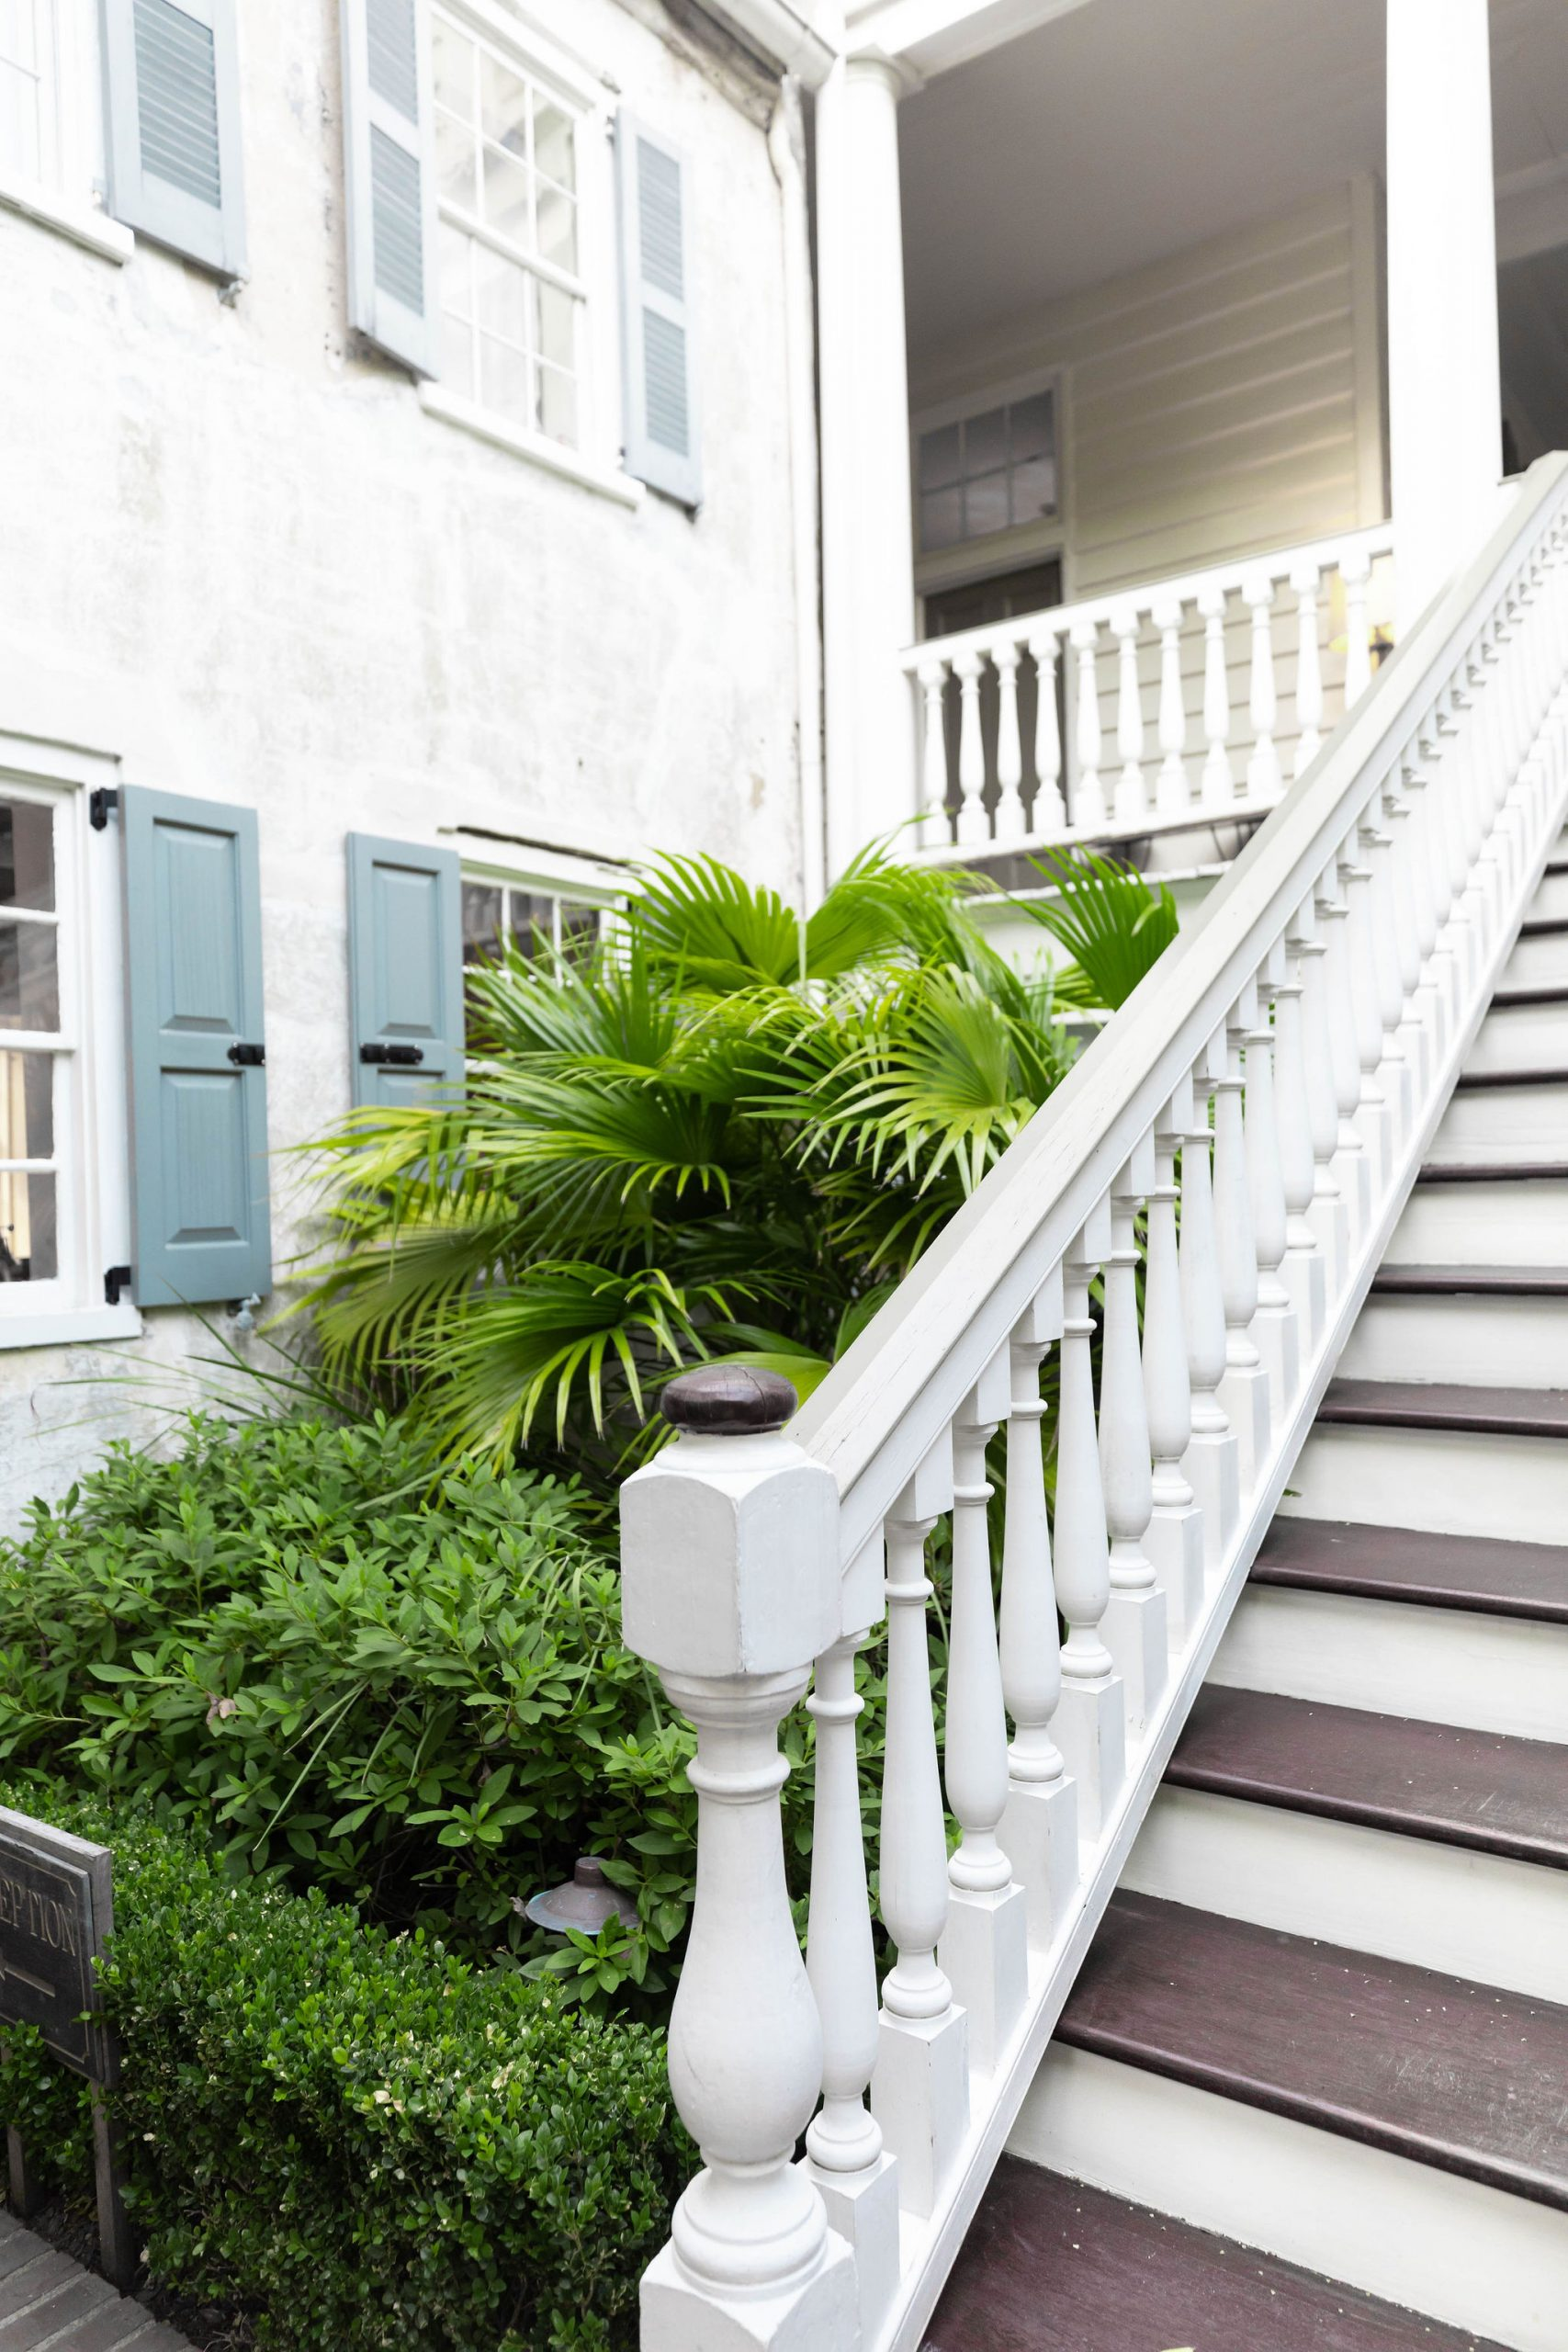 Alfresco Dining in the Courtyard of Zero George Restaurant + Bar in Charleston South Carolina Photographed and Written by Luxury Travel Writer Annie Fairfax